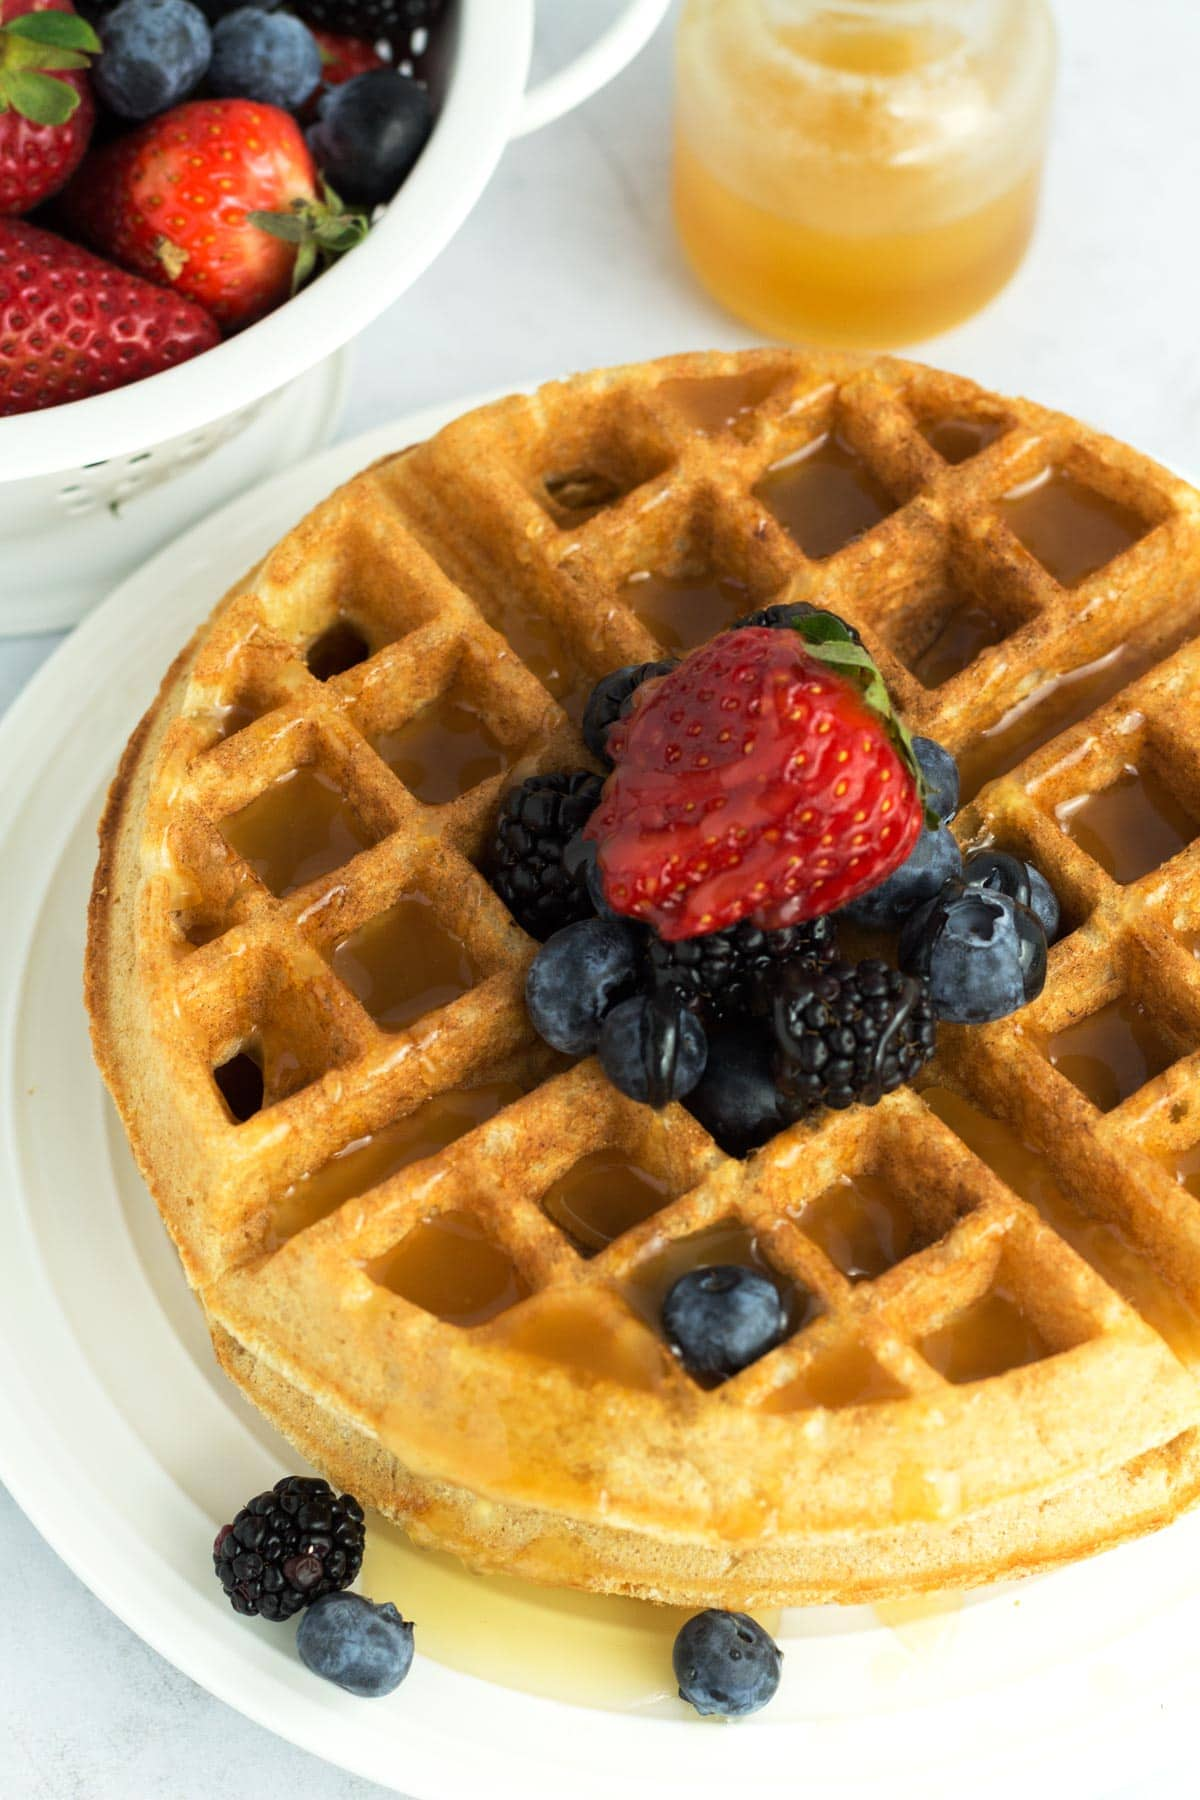 Waffle piled high with berries and dripping in all-natural homemade honey butter syrup.